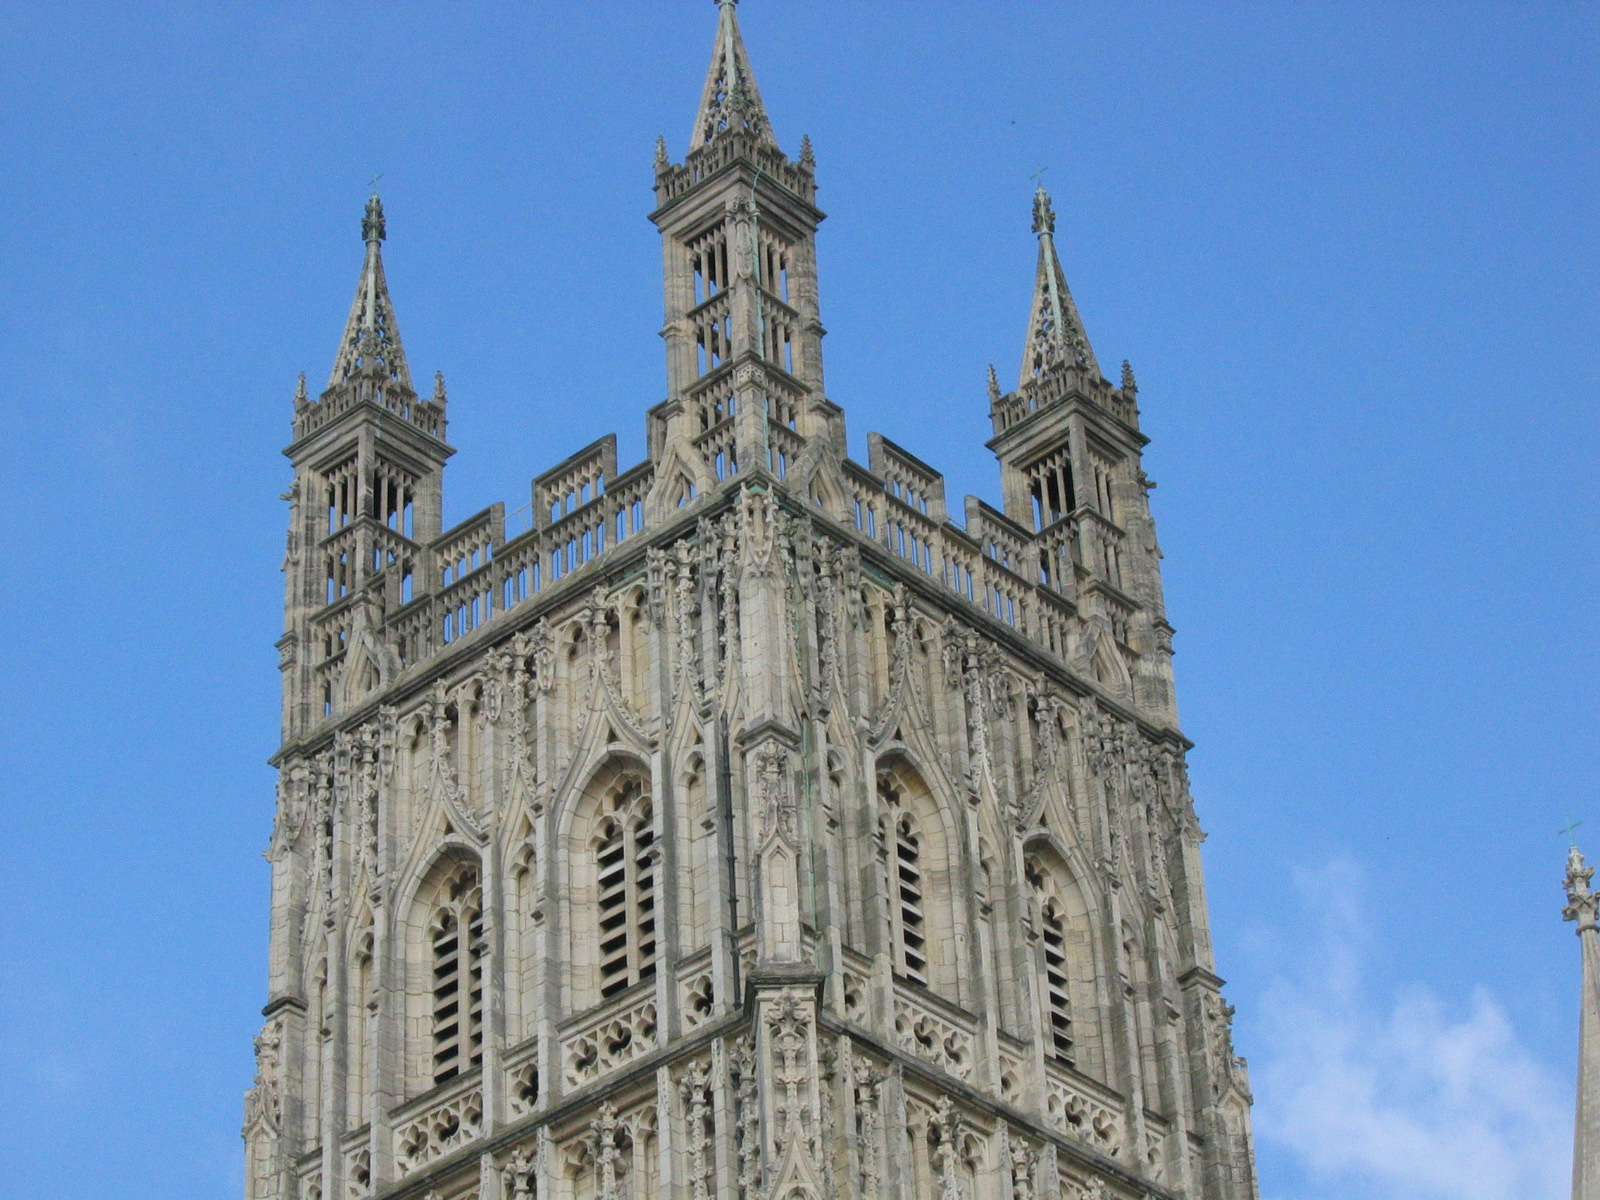 TowerOfGloucesterCathedral